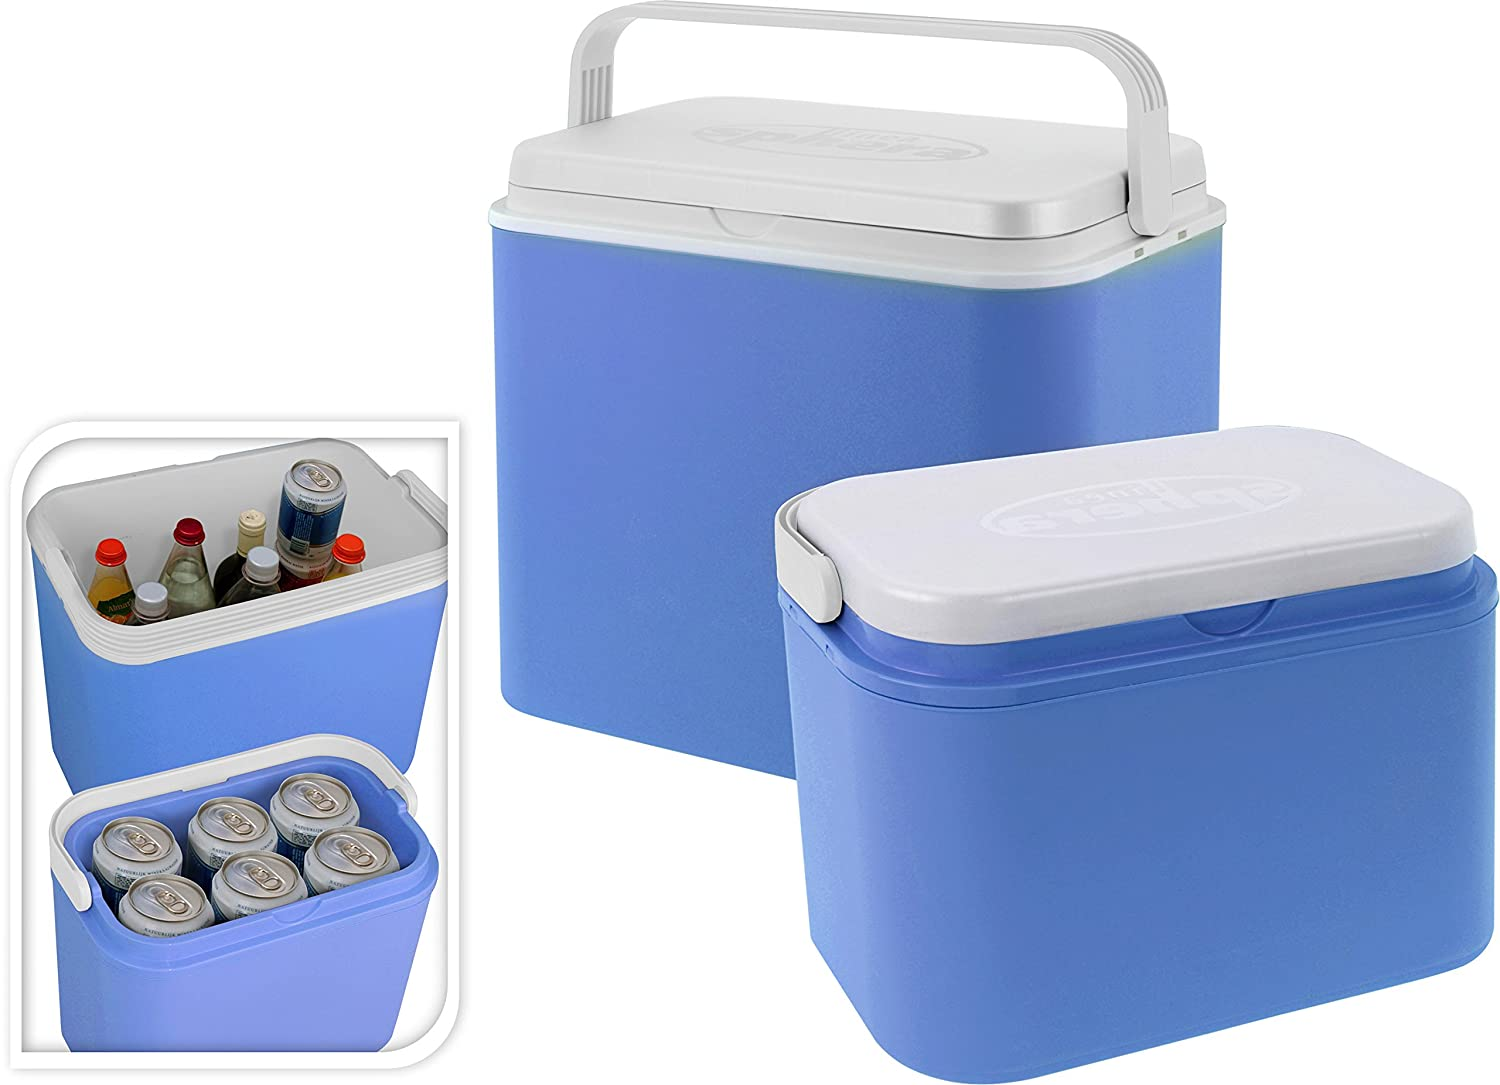 10 Litre 10 or 24 Litre Family Insulated Cool Box Cooler Party Picnic Beach Travel